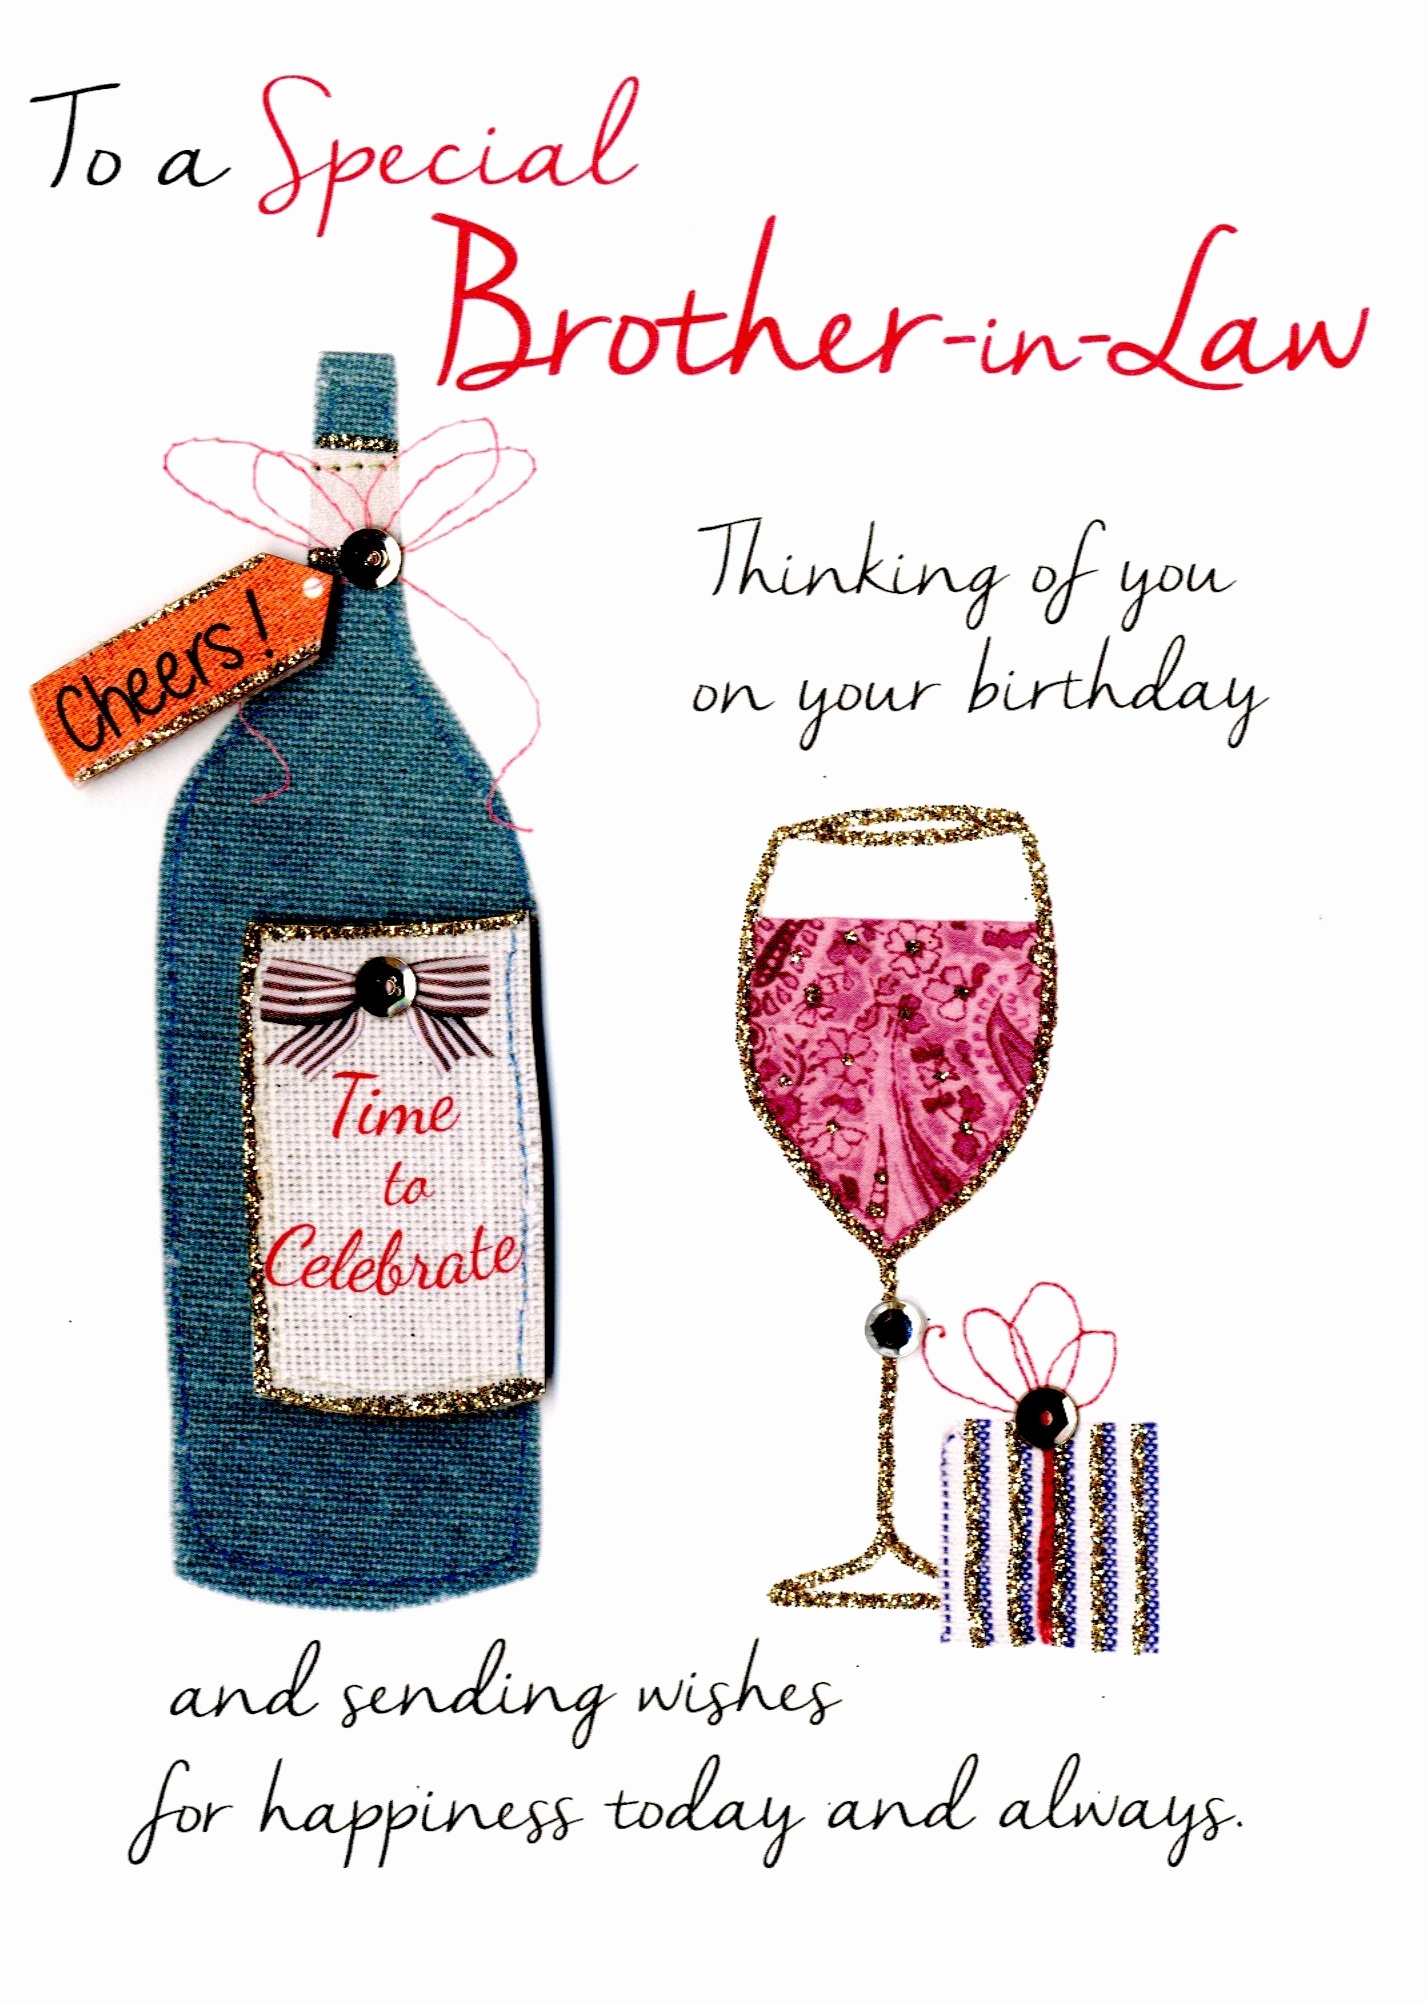 birthday greeting cards for sister in law ; sister-in-law-50th-birthday-card-luxury-special-brother-in-law-birthday-greeting-card-cards-of-sister-in-law-50th-birthday-card